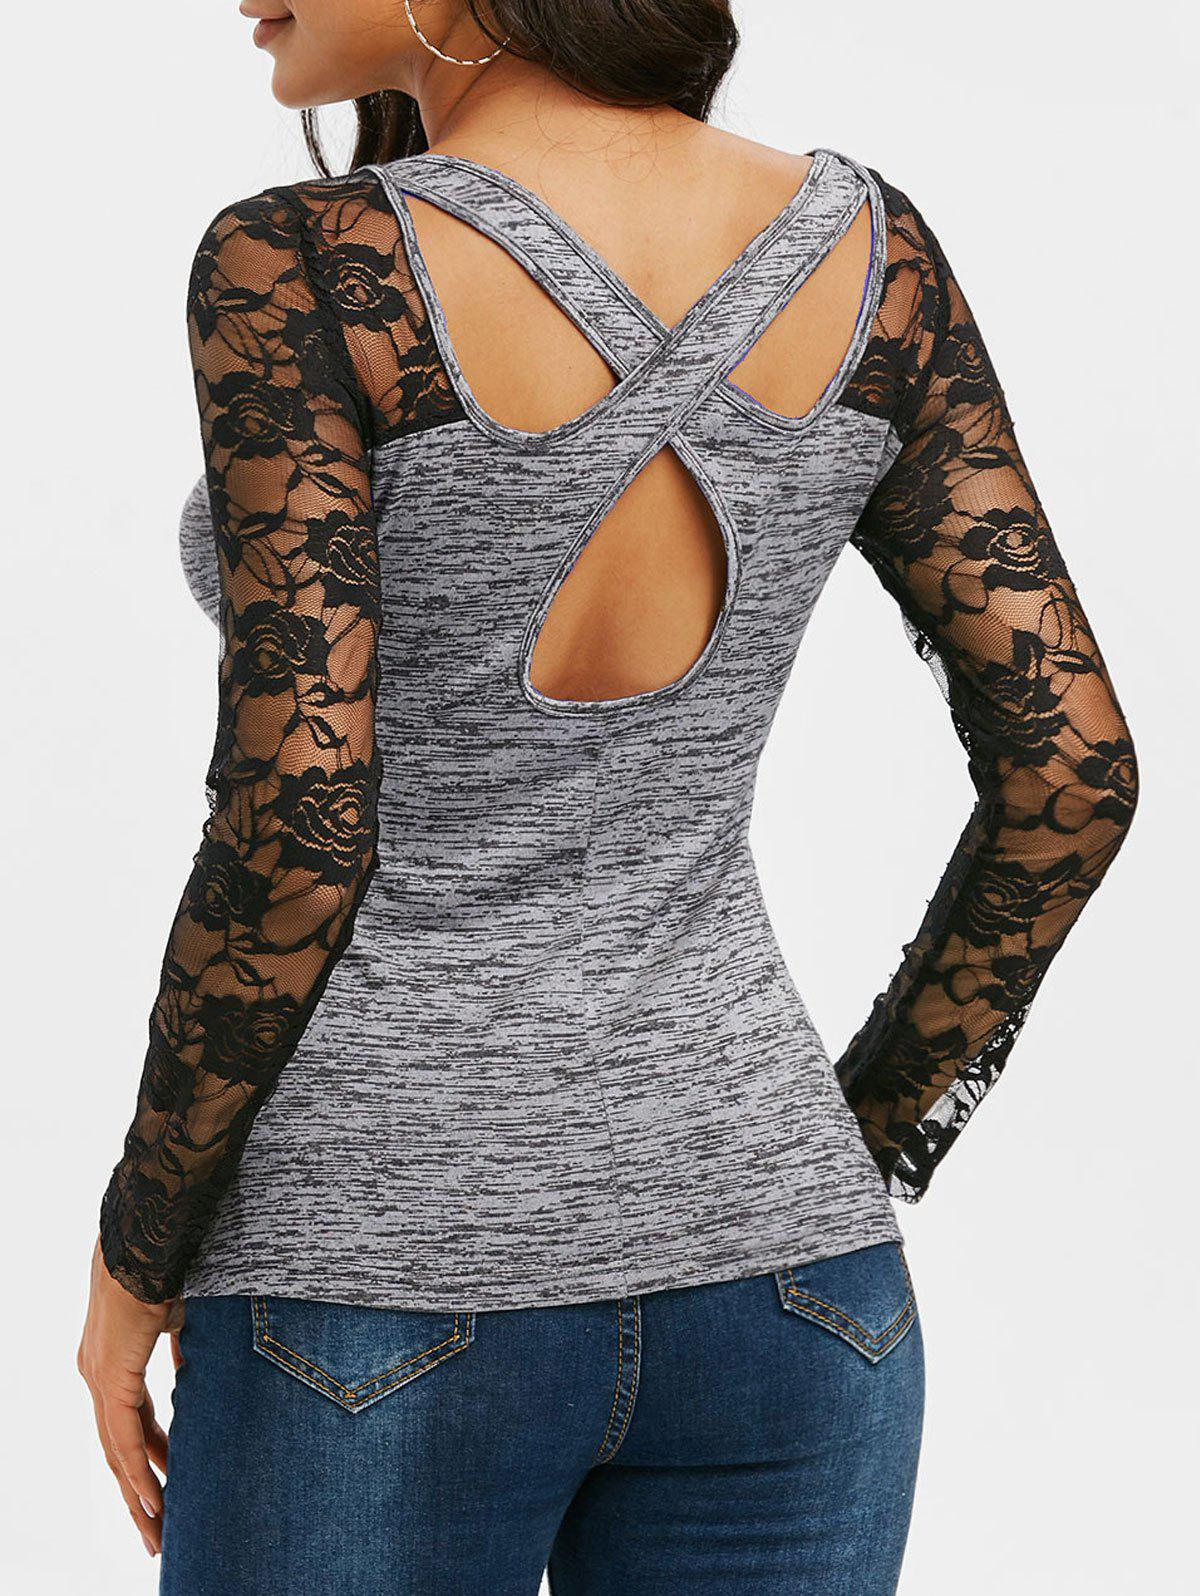 Space Dye Print Lace Insert Cut Out T-shirt - DARK GRAY M